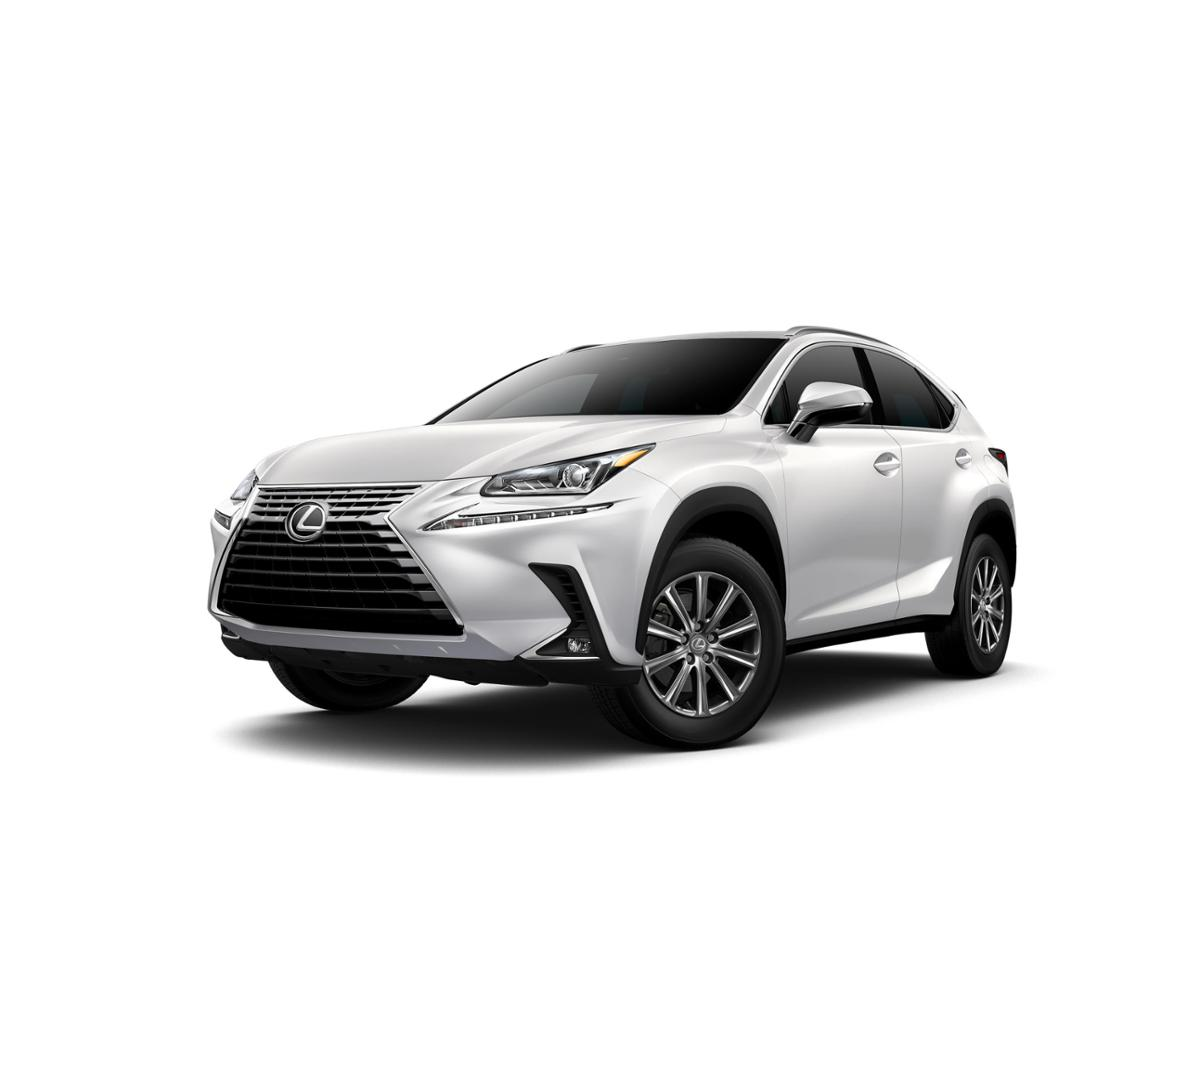 2020 Lexus NX Vehicle Photo in Danvers, MA 01923